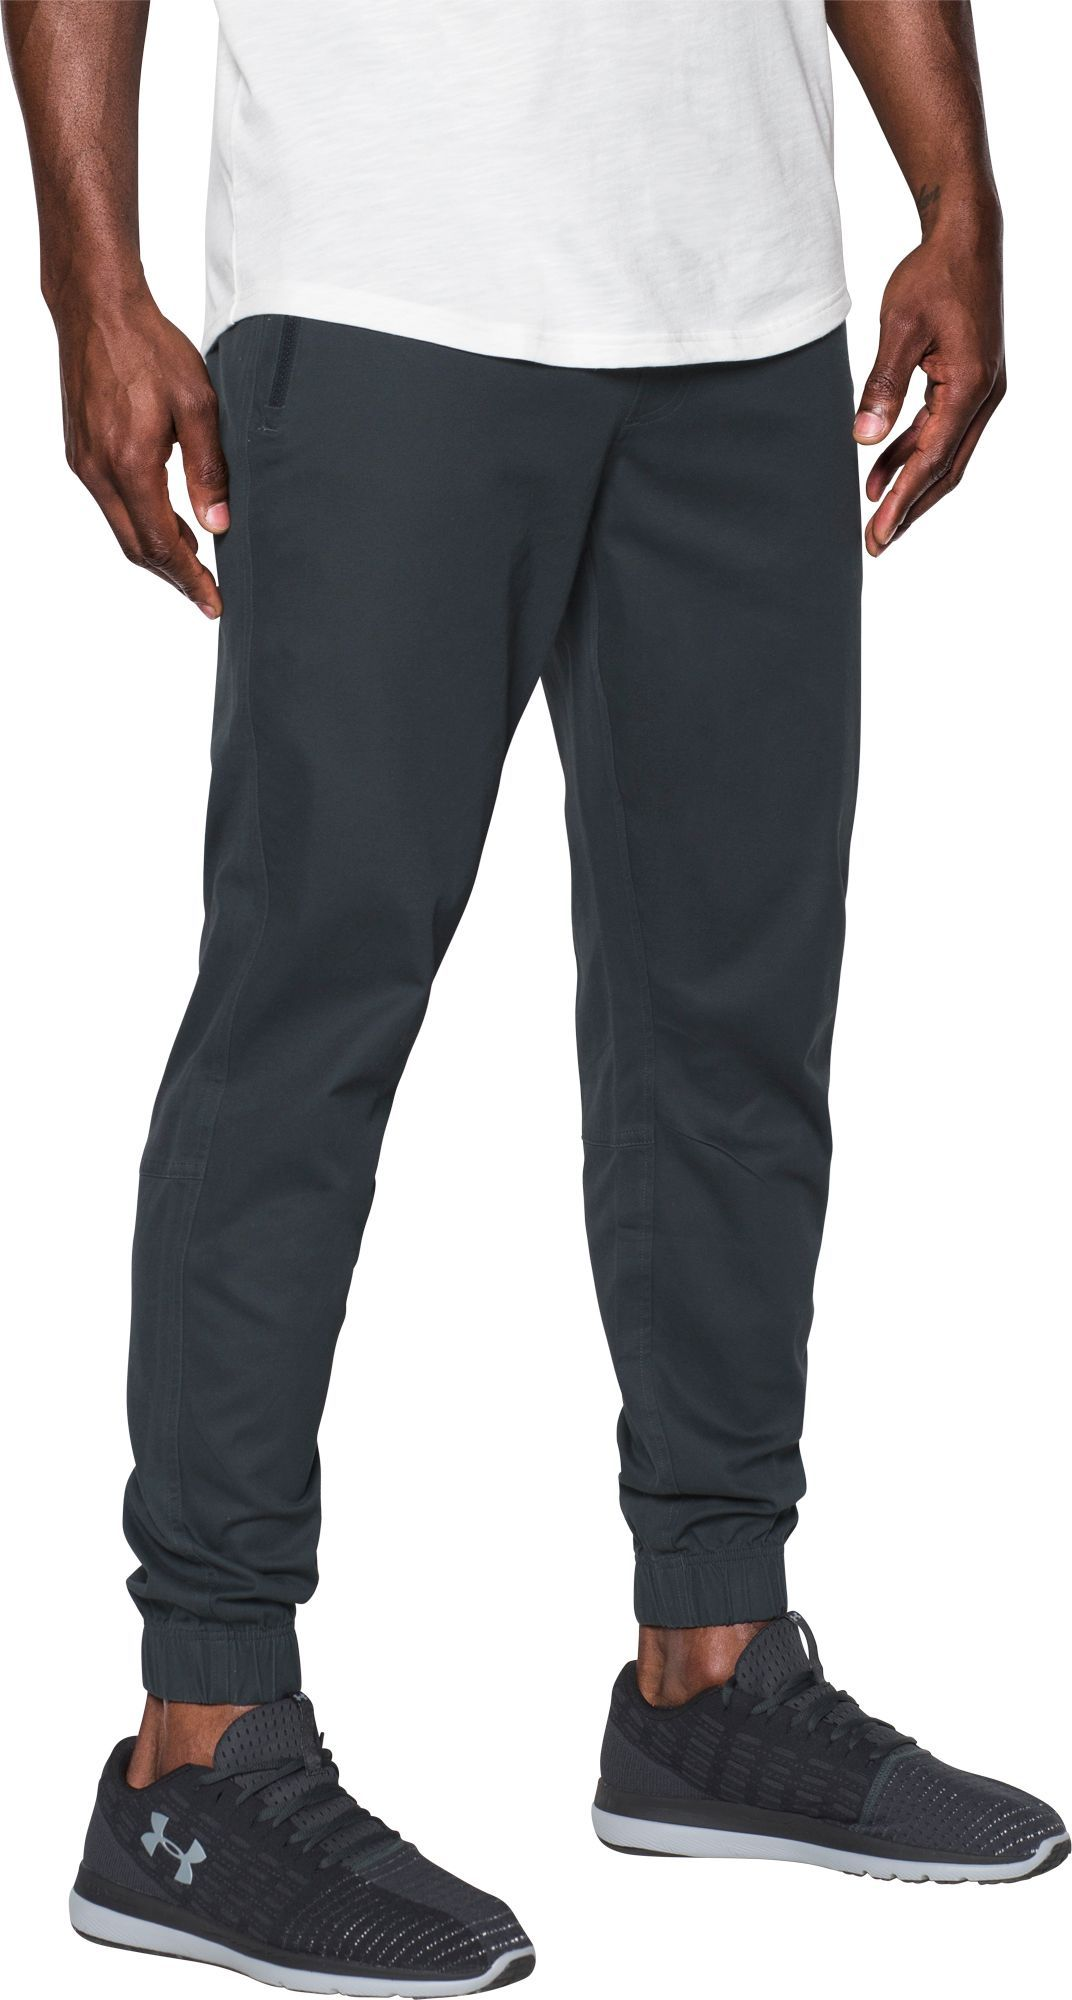 NWT Under Armour Men/'s Performance Chino Jogger Academy Black Print 1302704-001